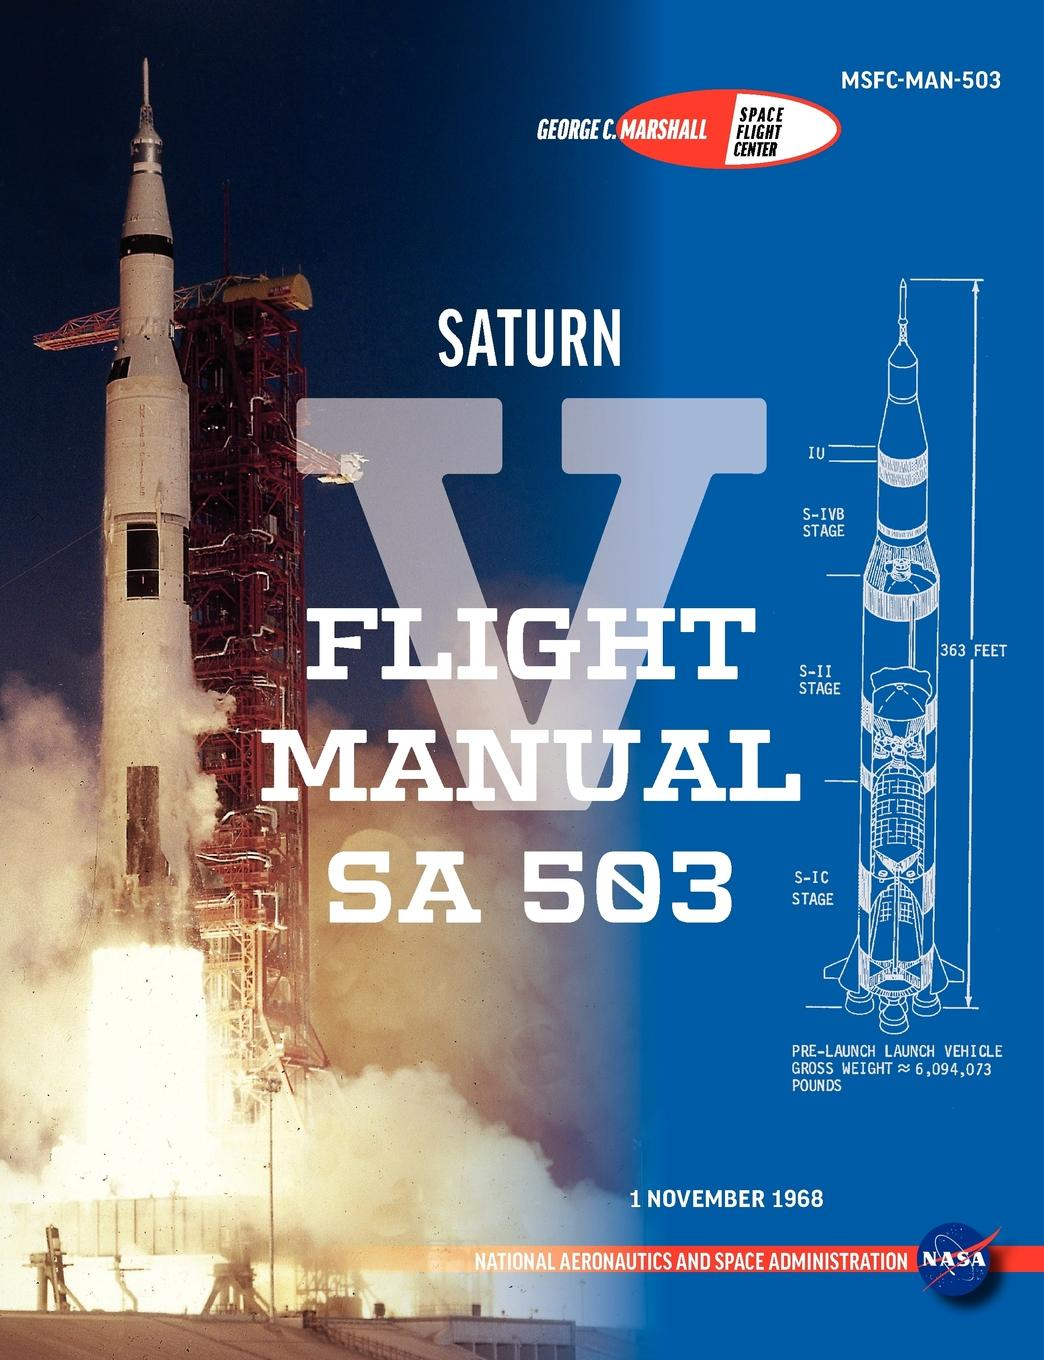 NASA, George Marshall Space Flight Center, Nasa Manned Spacecraft Center Saturn V Flight Manual Sa 503 susengo model building blocks kit space shuttle launch center rocket astronaut figures spacecraft boy toy compatible with lepin